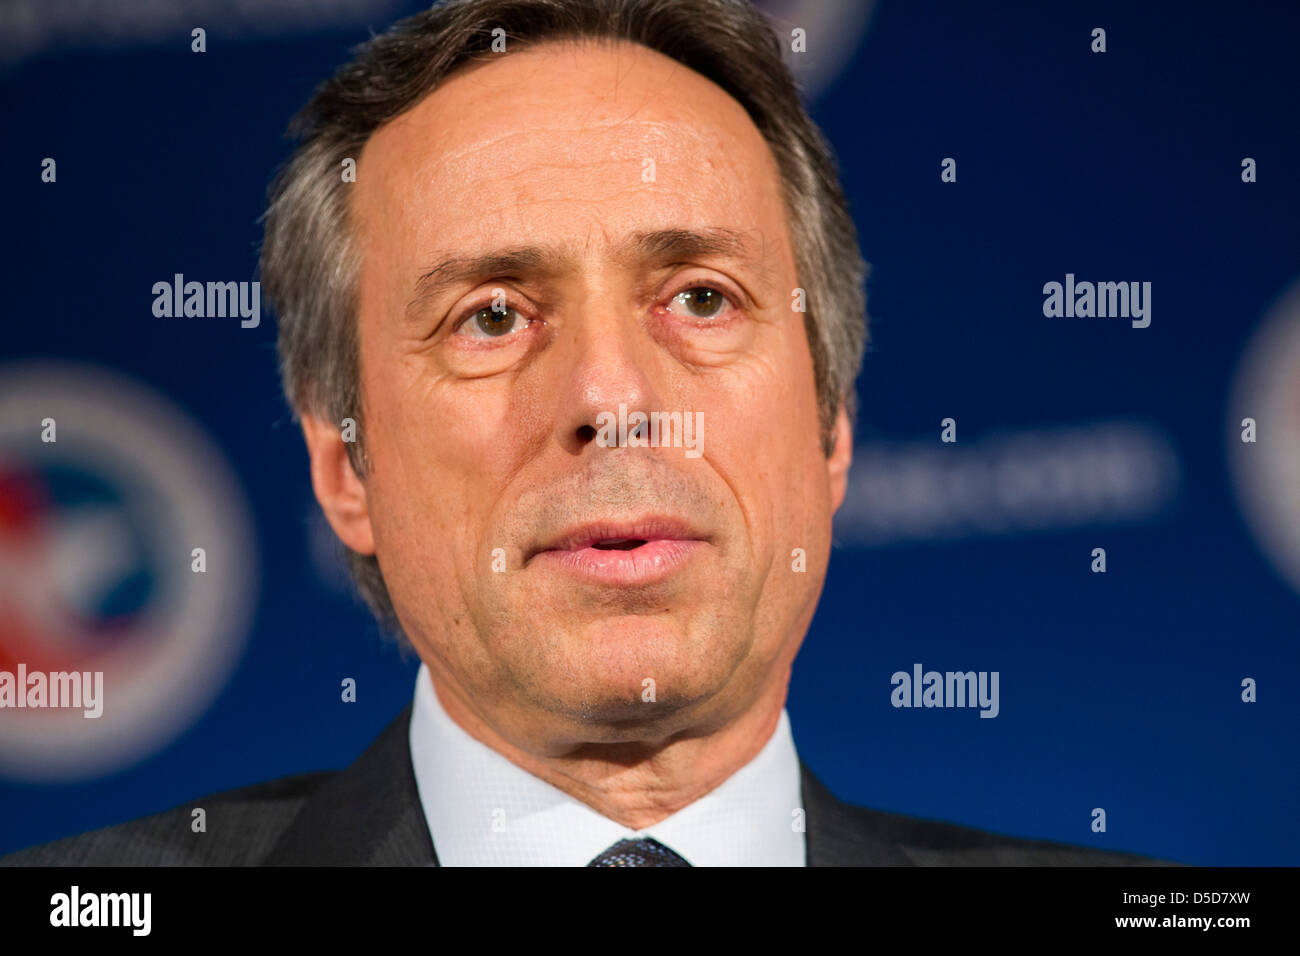 Guy Hachey, President and Chief Operating Officer (COO) of Bombardier Aerospace. - Stock Image